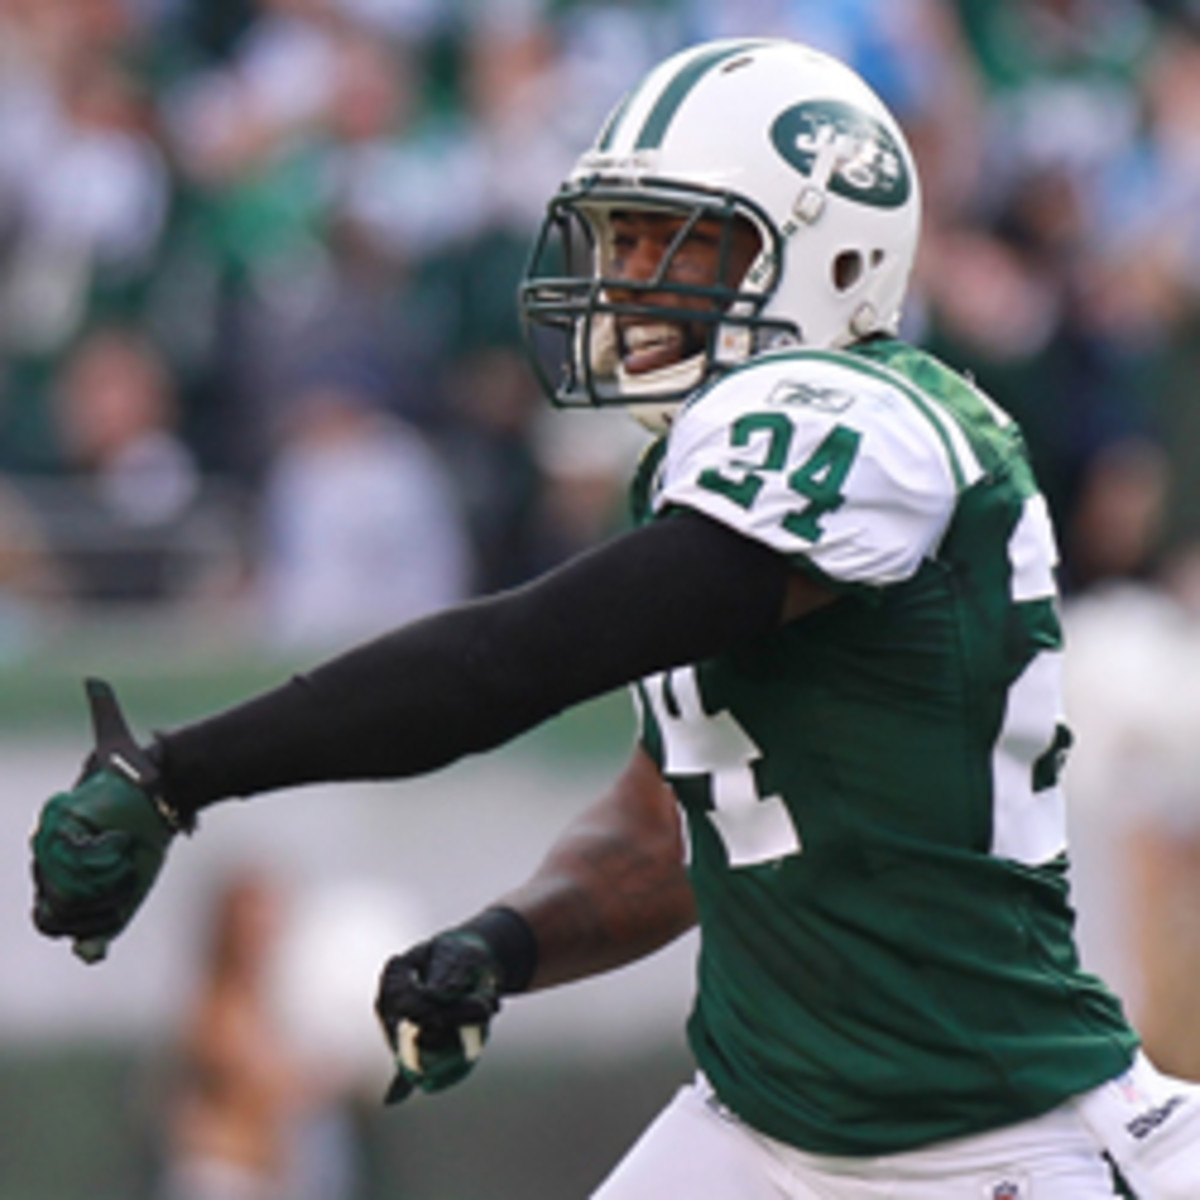 Jets cornerback Darrelle Revis says he needs answers as his name has been involved in trade rumors. (Nick Laham/Getty Images)